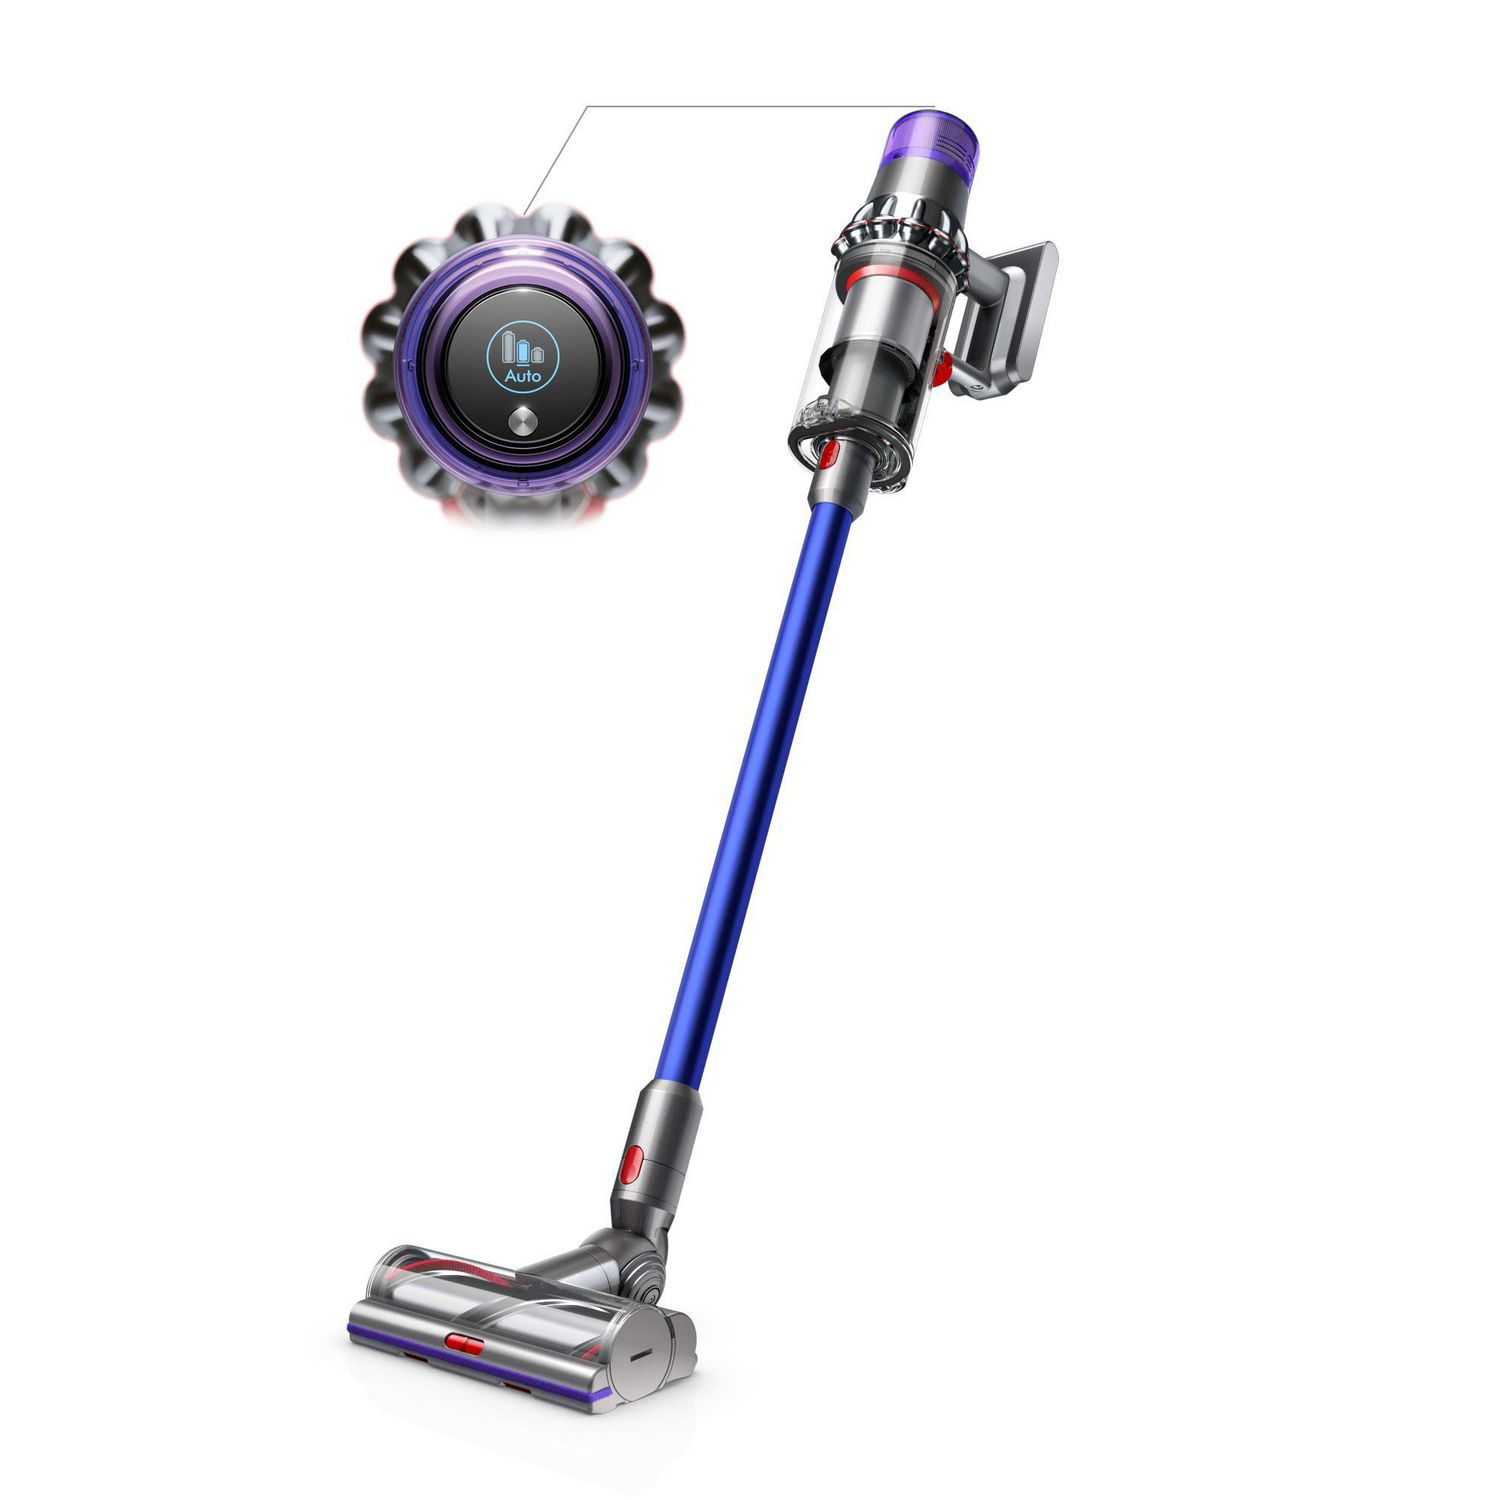 Blue and silver upright Dyson V11 Absolute cordless hardwood floor vacuum cleaner - best vacuum for hardwood floors